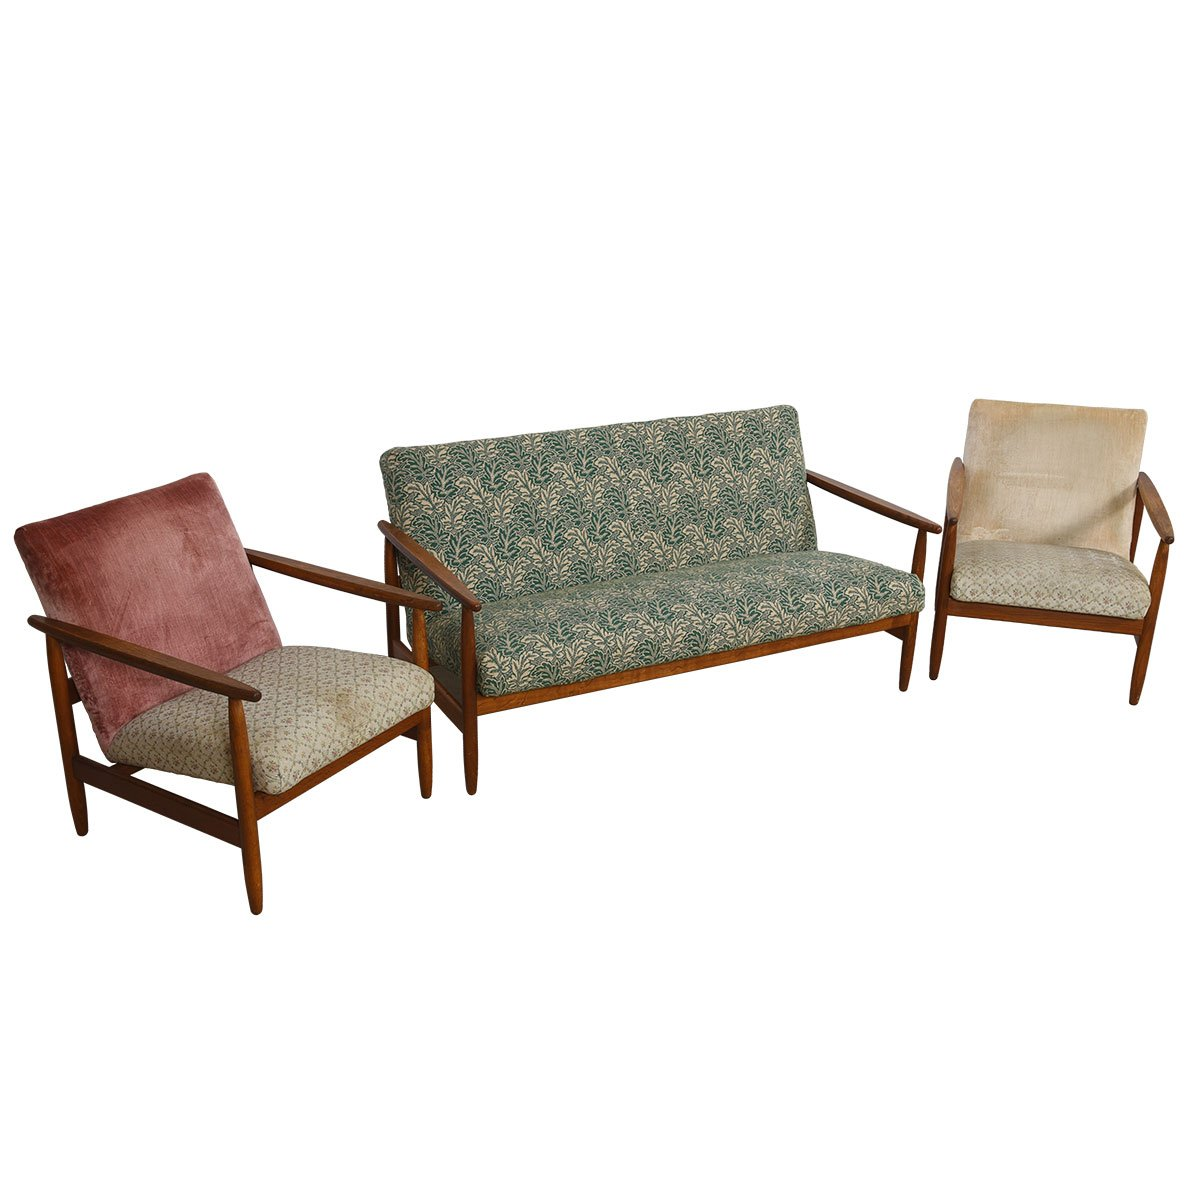 Rare Eyvind Johansson for FDB J65 Danish Set w/ Loveseat & Pr Lounge Chairs.